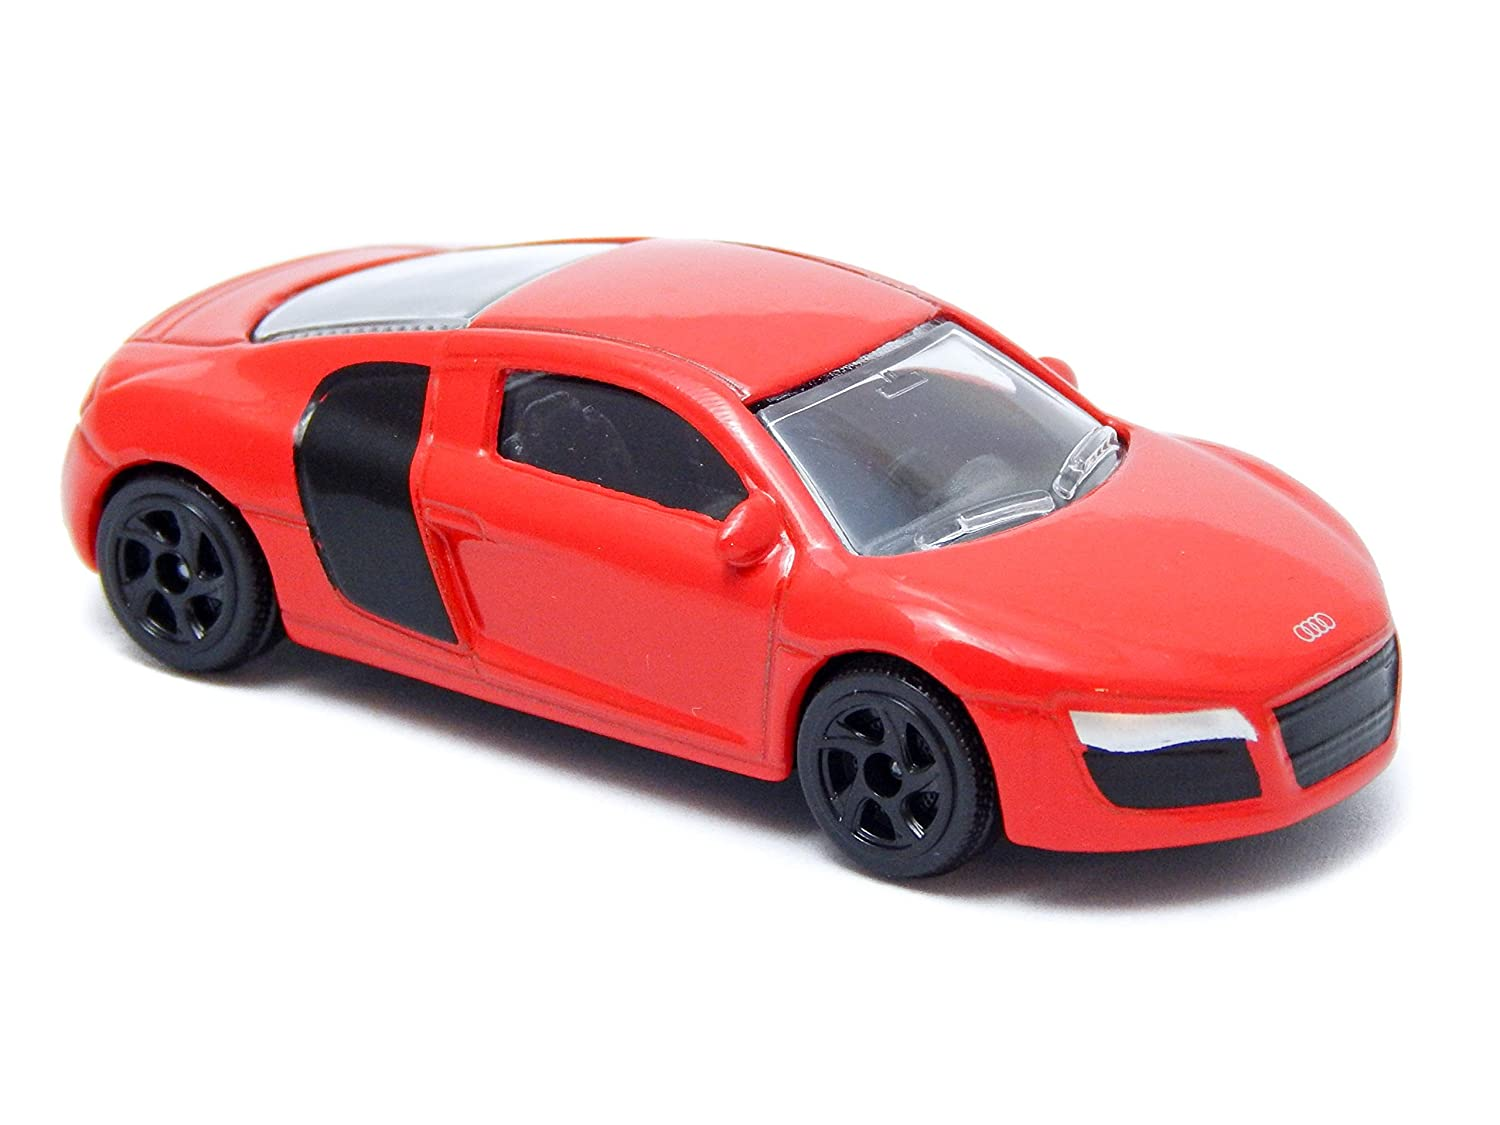 Amazon.com: Majorette Audi R12 12-inch Toy Car: Toys & Games | audi toy car